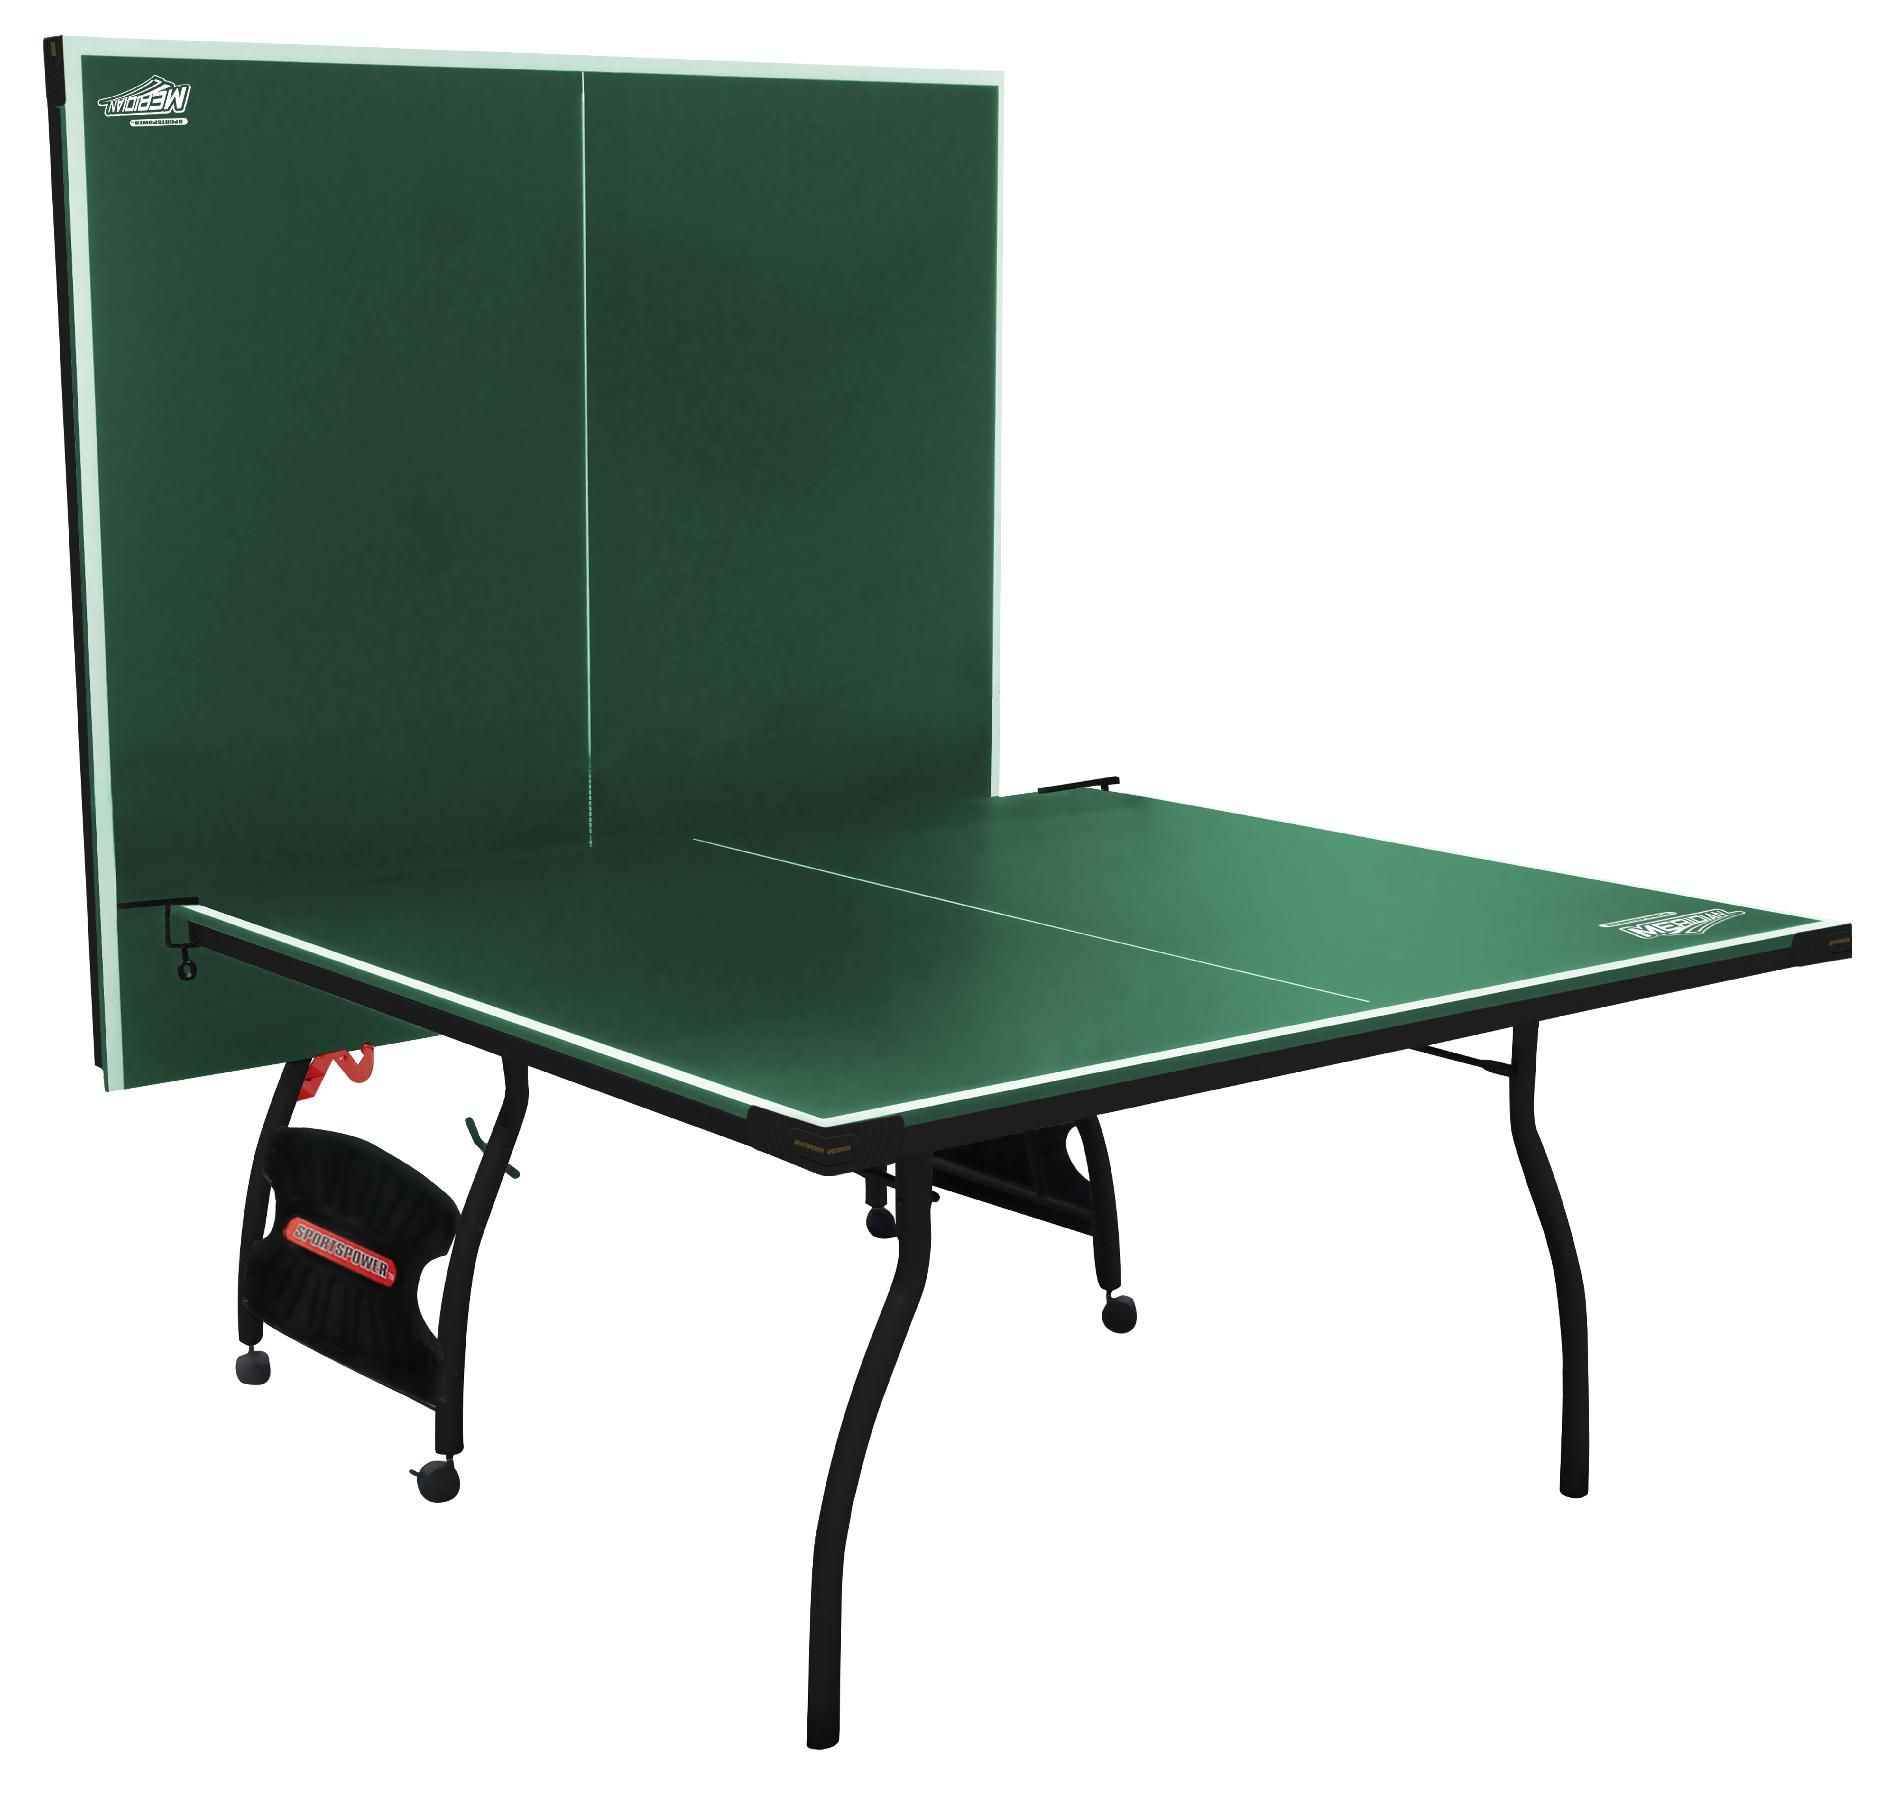 Sportspower Meridian 2 Piece Table Tennis Set